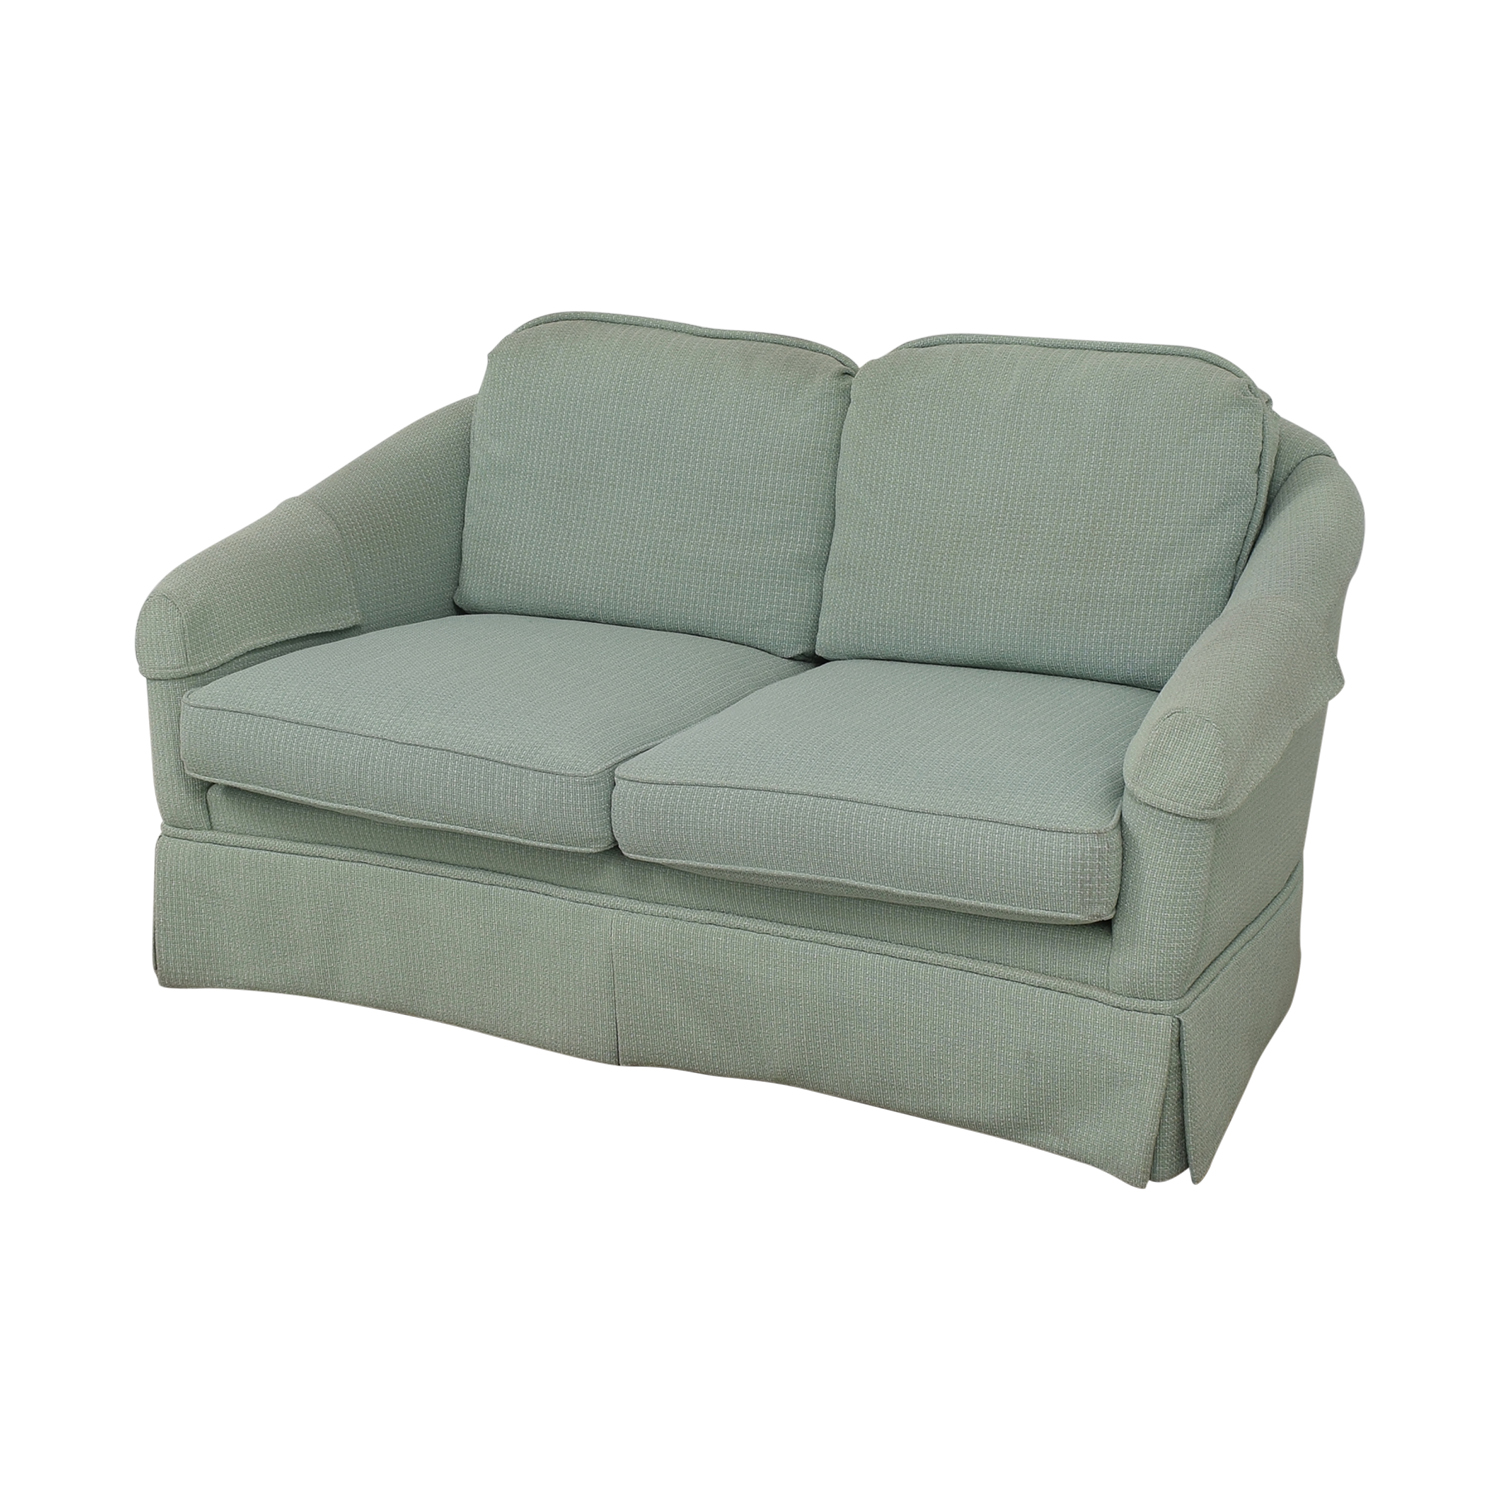 Hickory Chair Two Cushion Loveseat / Loveseats